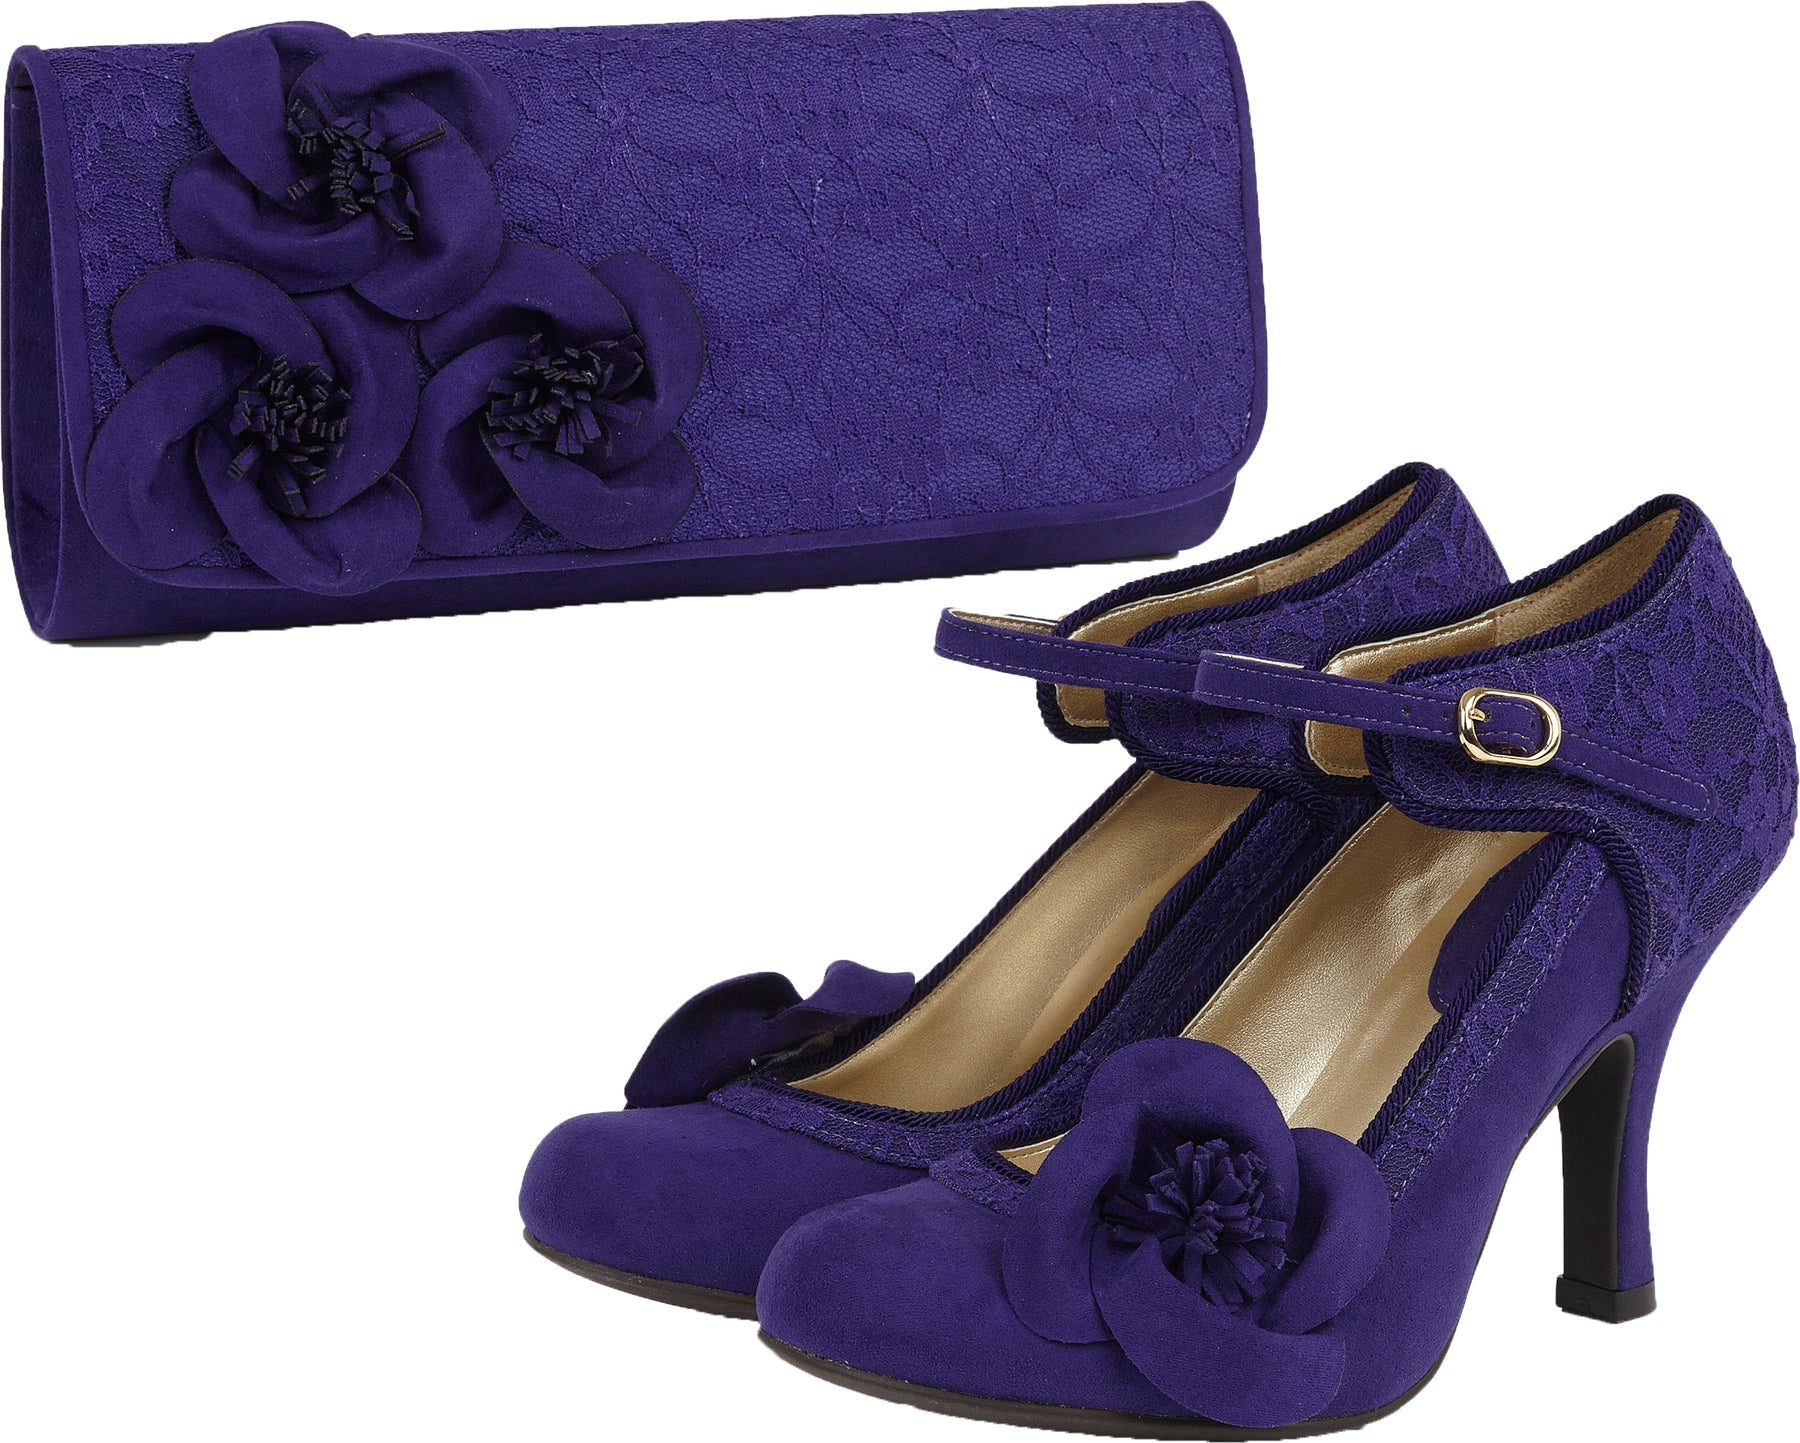 Ruby Shoo Womens Polly Mary Jane Pumps /& Free Belle Divino Sole Protector